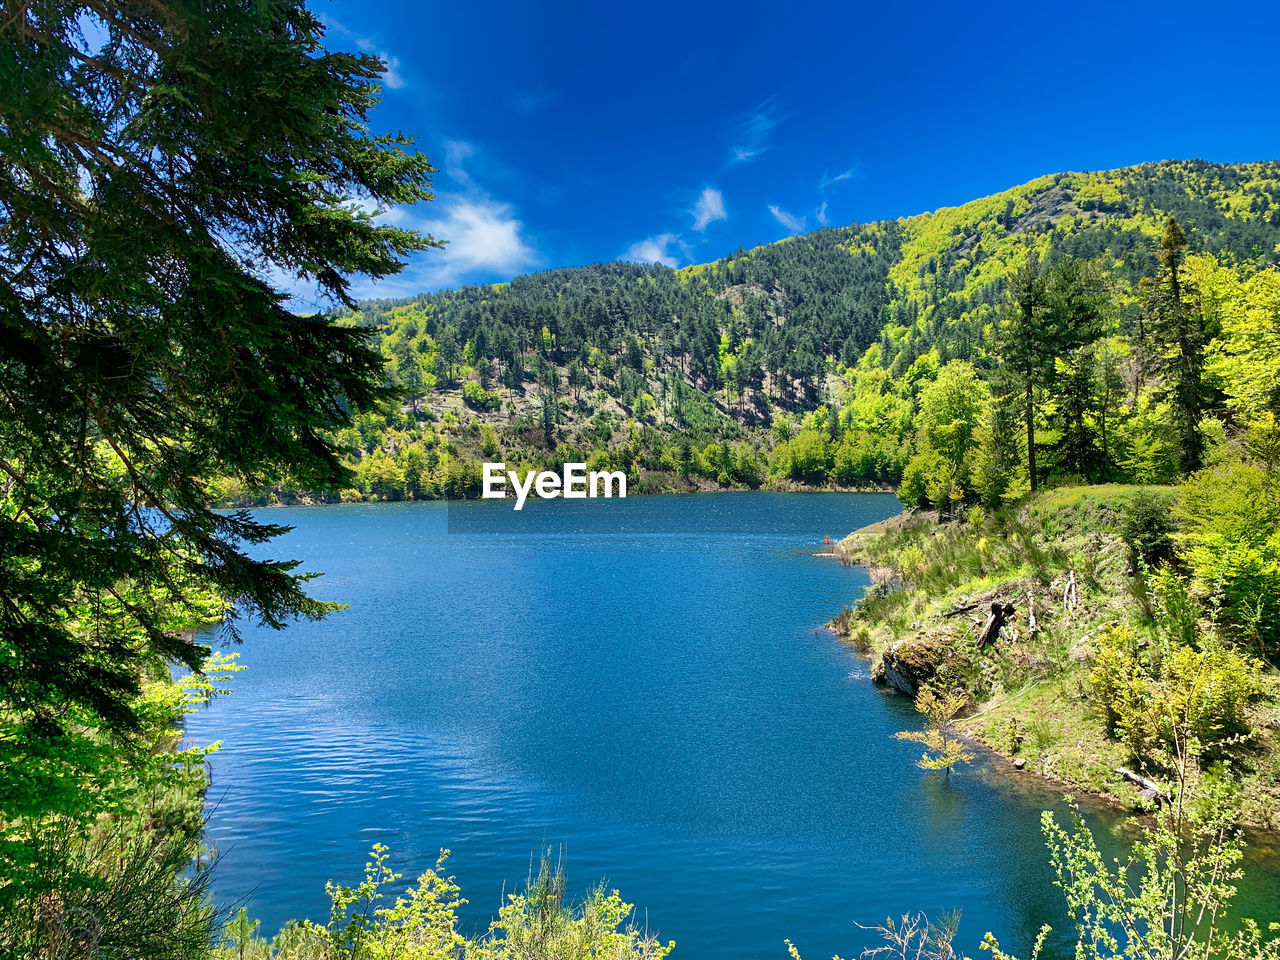 water, tree, beauty in nature, scenics - nature, plant, tranquil scene, tranquility, sky, blue, mountain, non-urban scene, nature, lake, idyllic, green color, growth, no people, day, sunlight